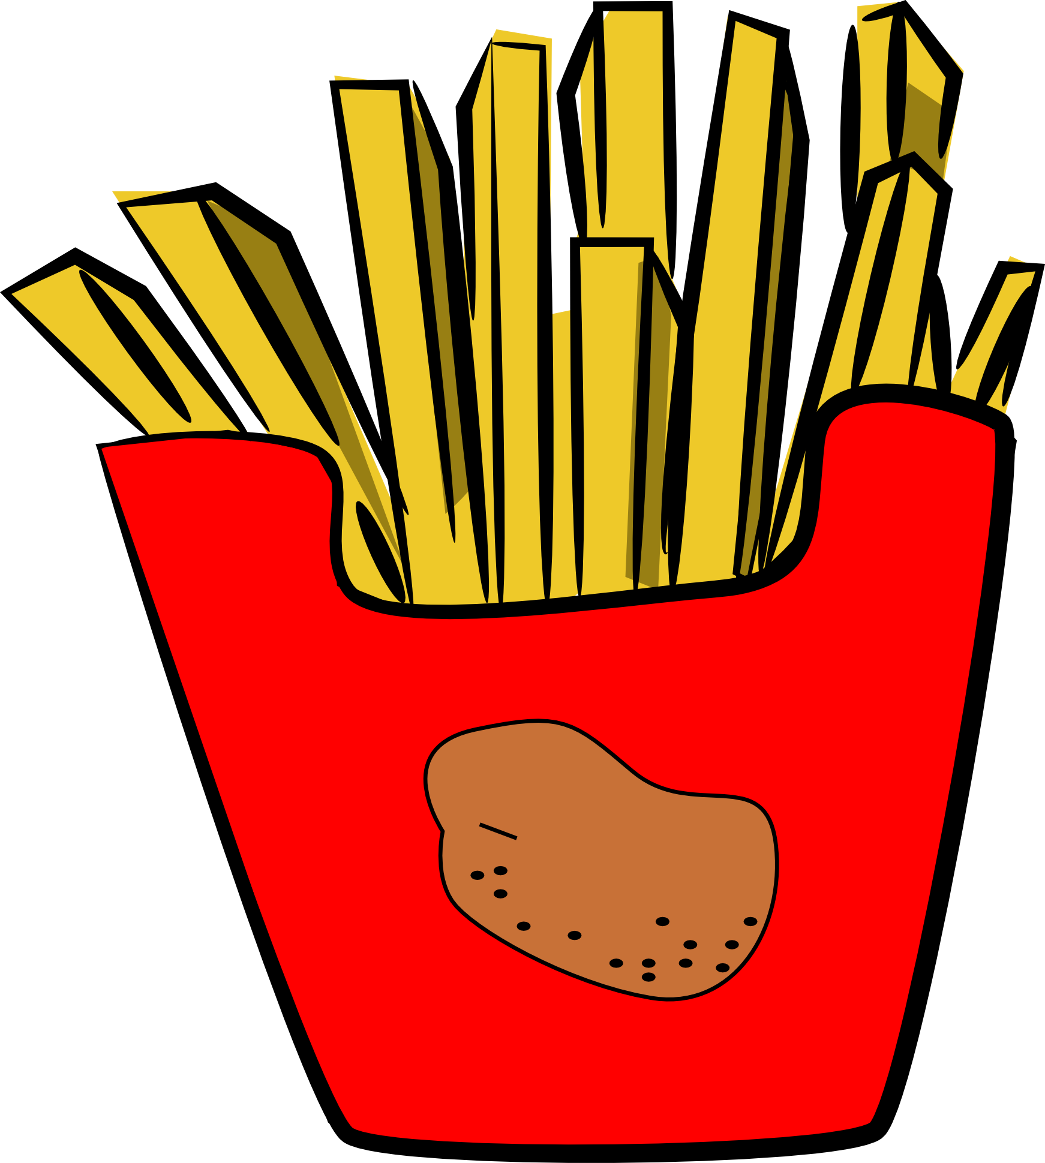 French fries pictures clipart black and white library Free Images Of French Fries, Download Free Clip Art, Free Clip Art ... black and white library